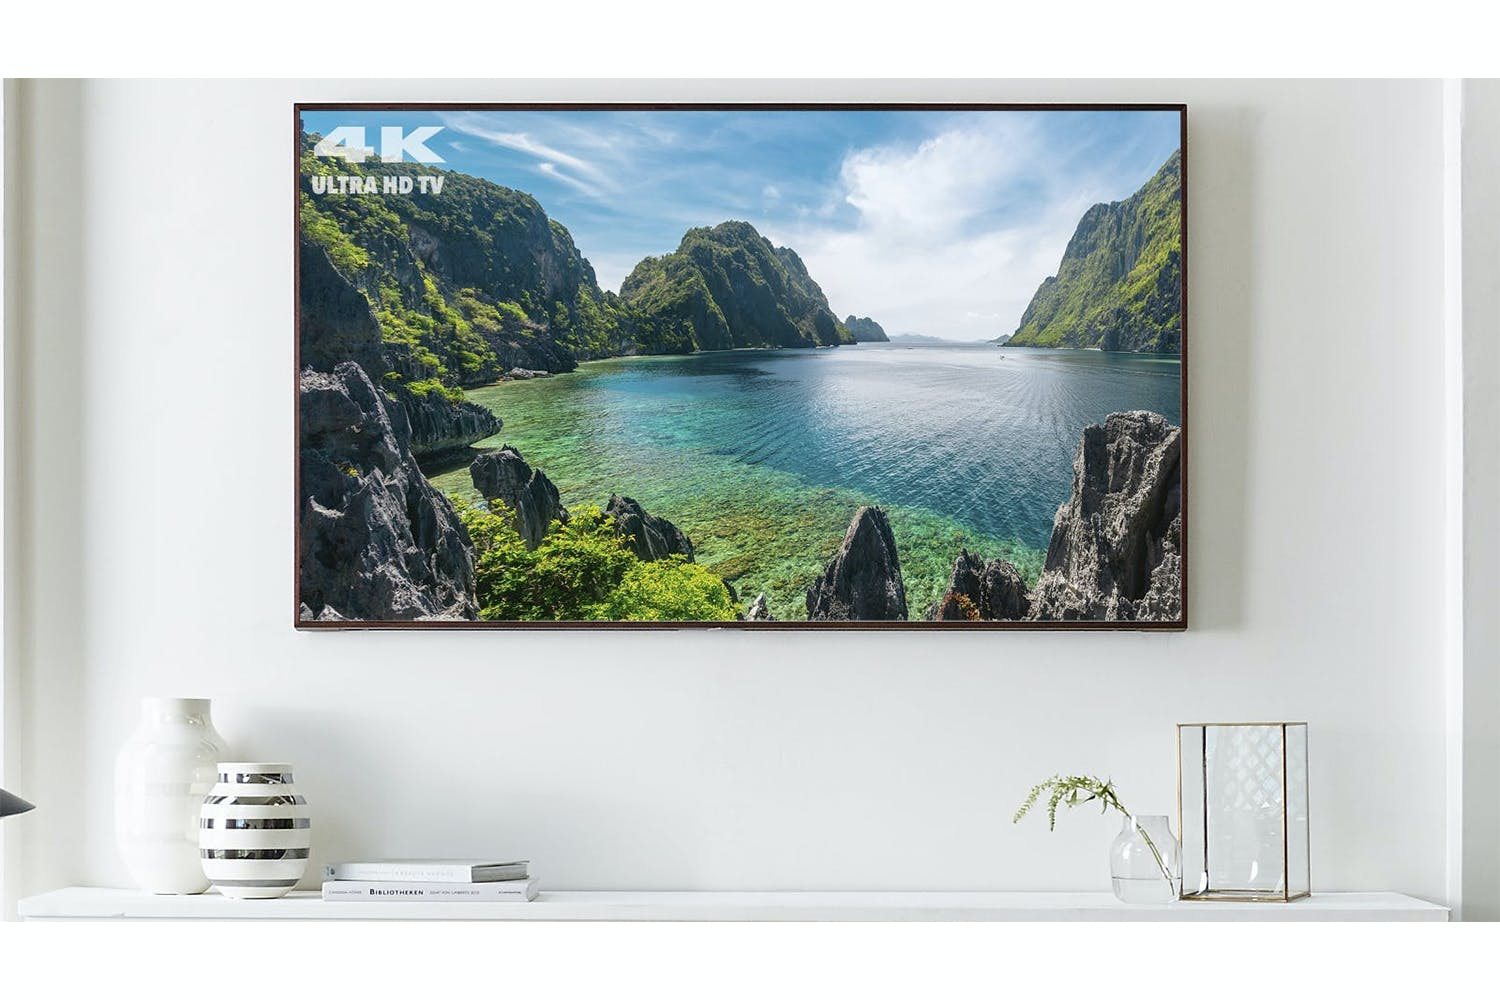 samsung 65 39 the frame 39 4k smart tv harvey norman new zealand. Black Bedroom Furniture Sets. Home Design Ideas